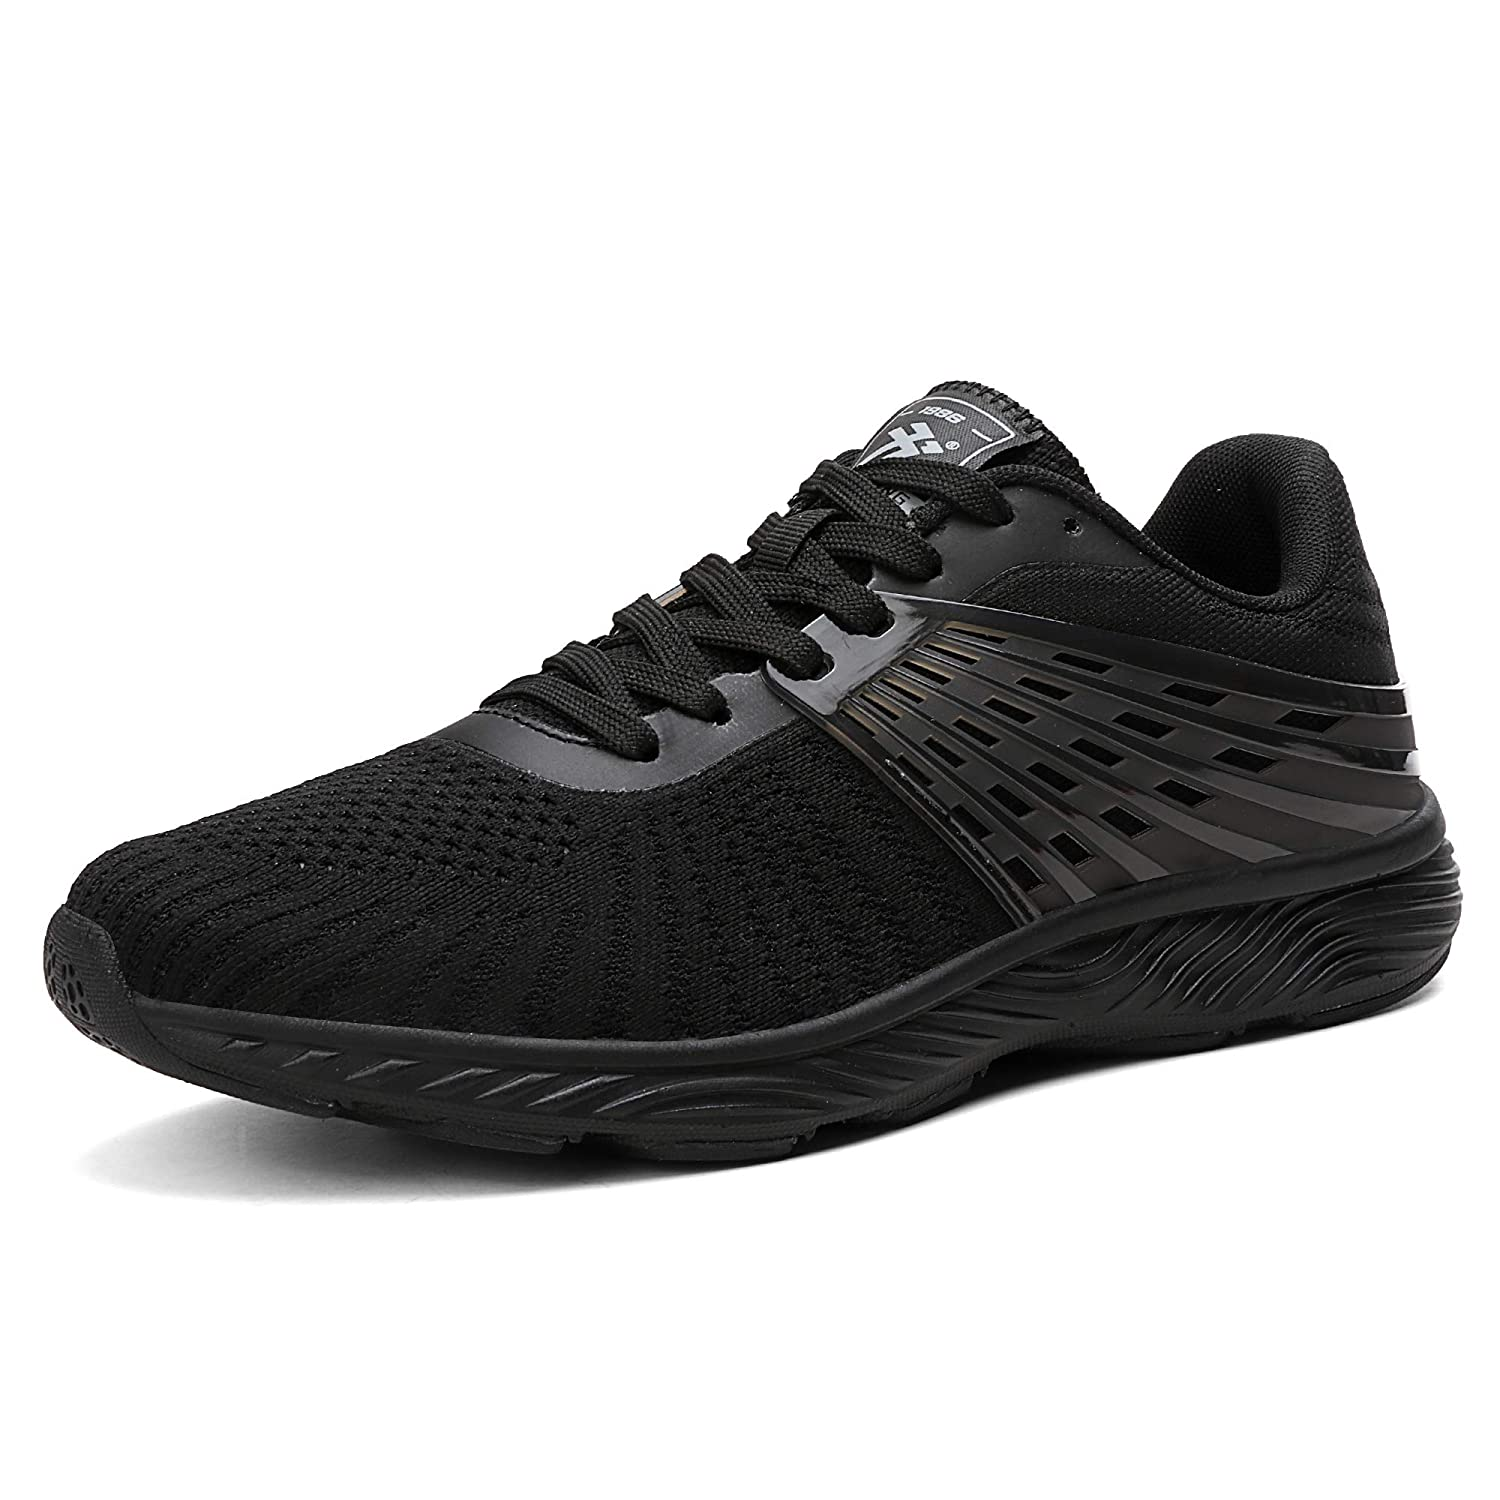 AX BOXING Running Shoes Men Mesh Lightweight Breathable Athletic Walking Gym Shoes